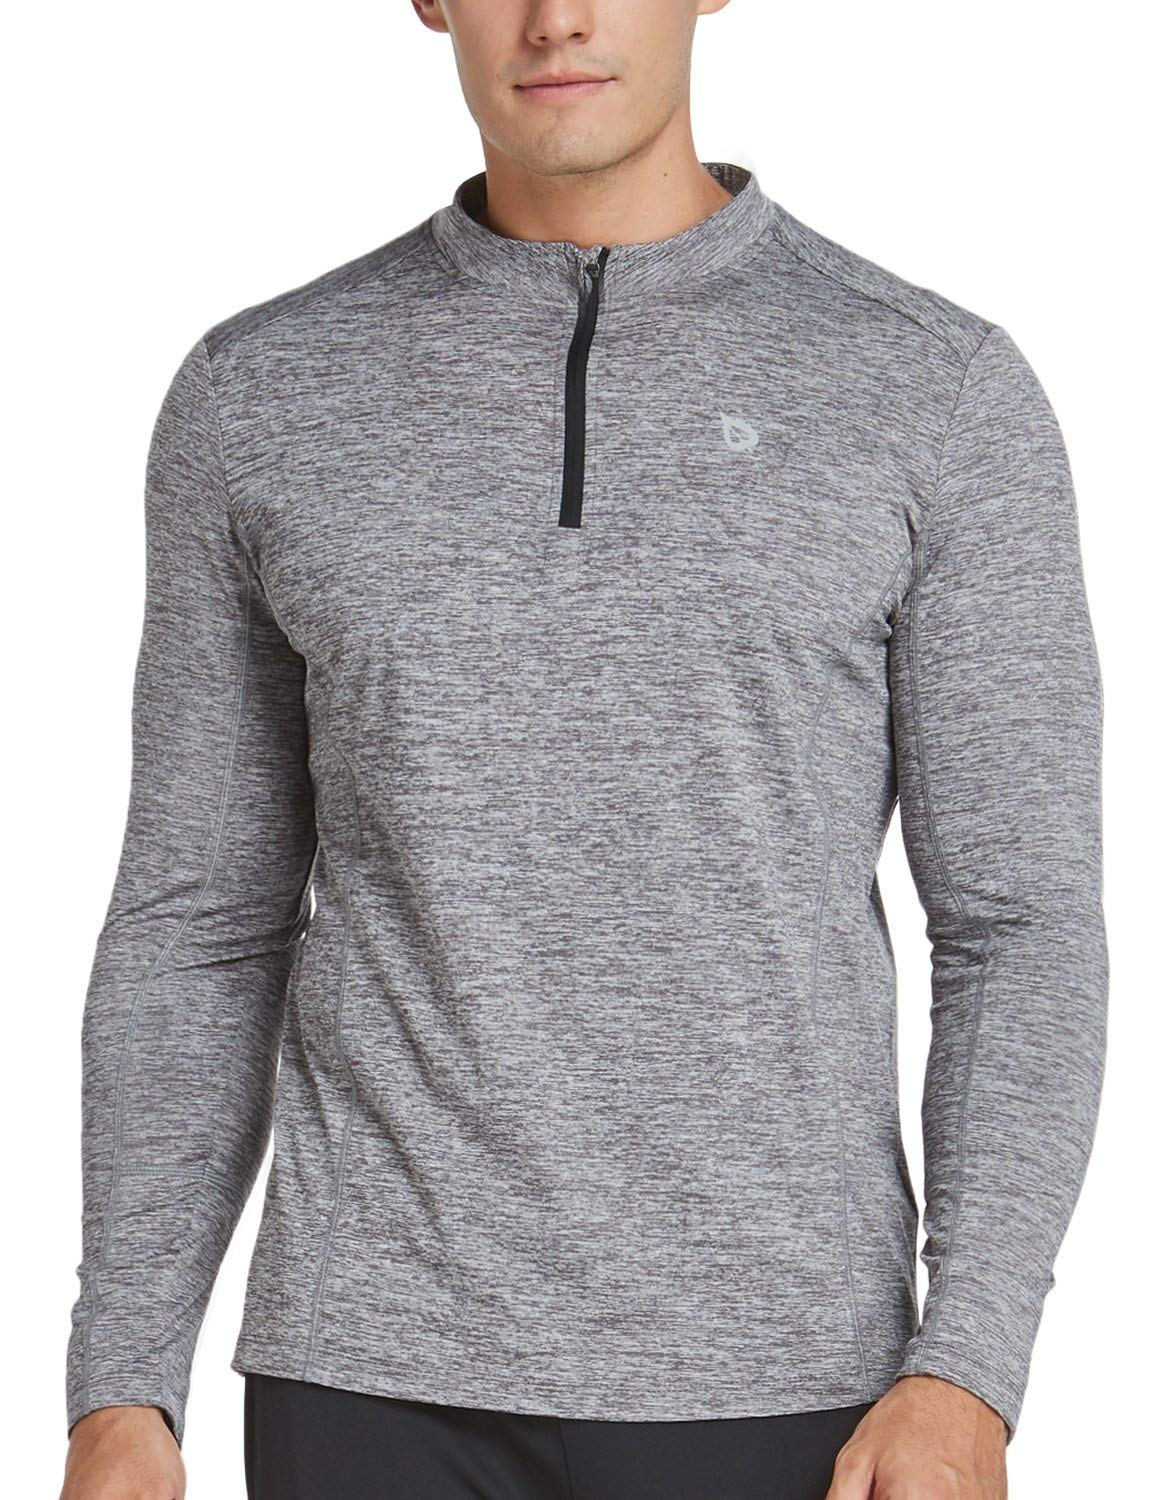 Baleaf Pullover Thermal Running T Shirts